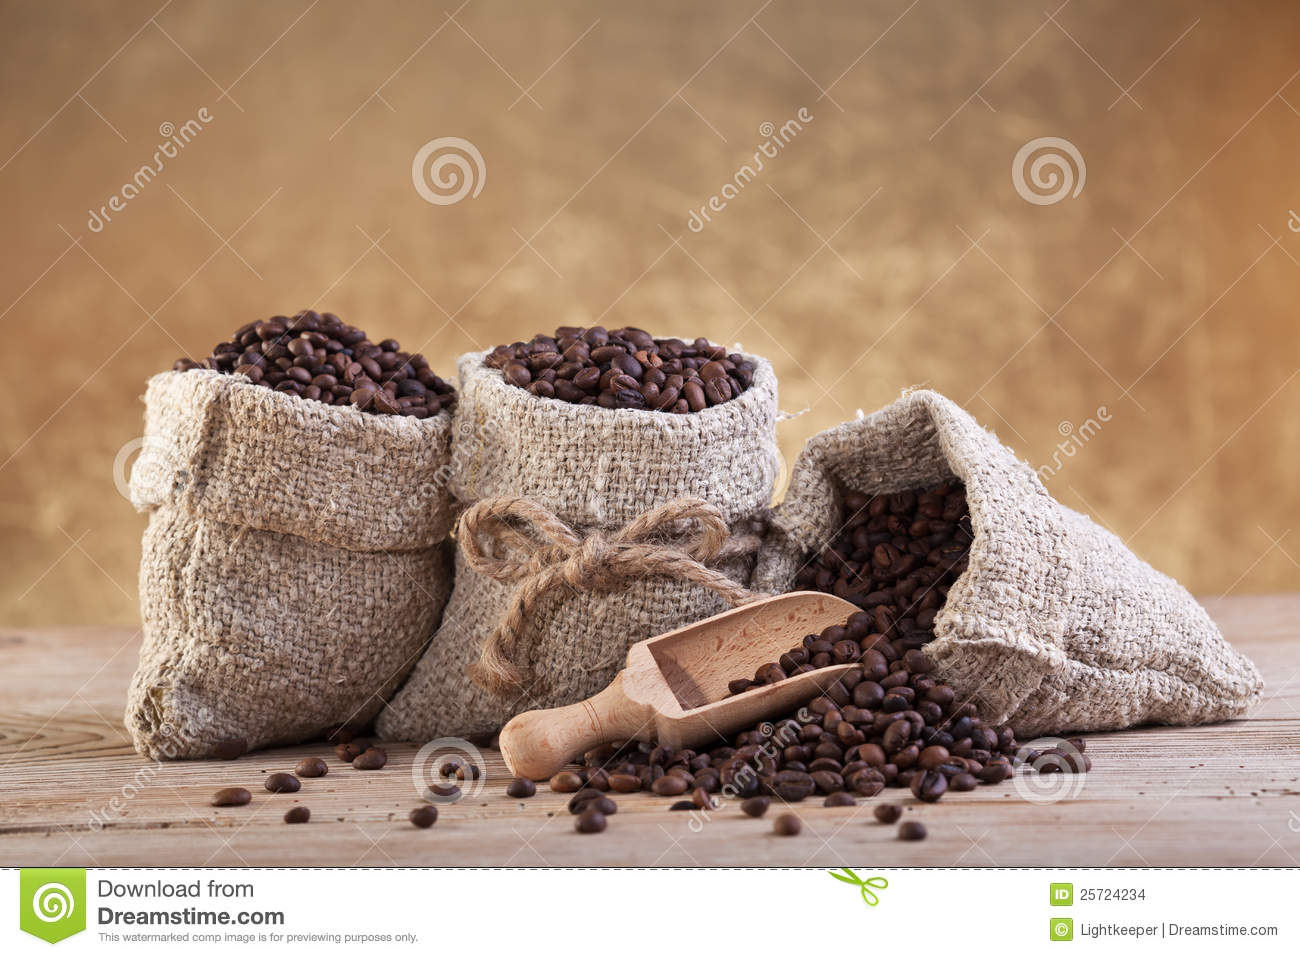 Roasted Coffee In Burlap Bags Stock Photo - Image: 25724234